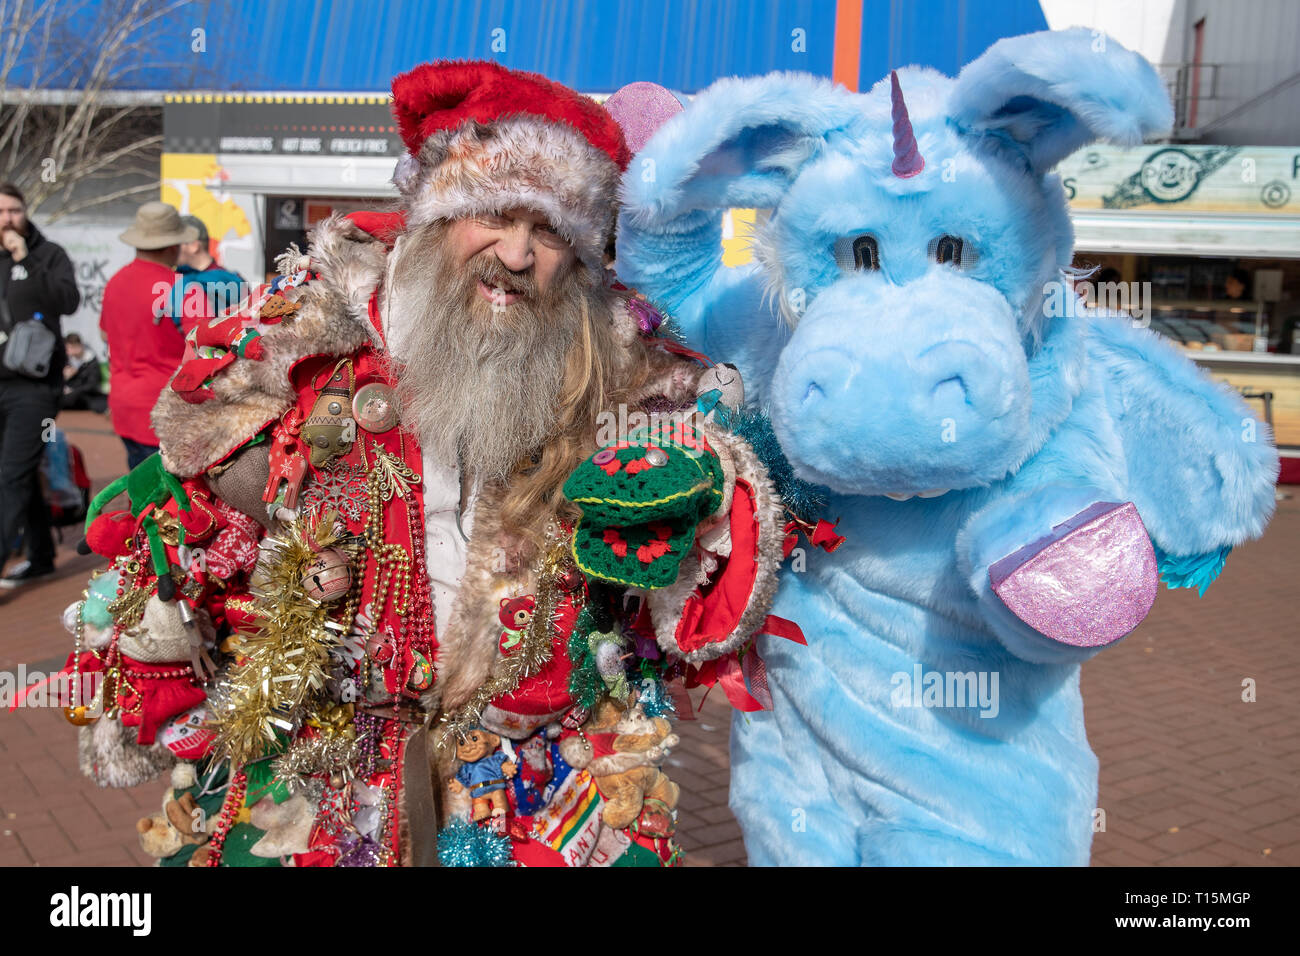 Birmingham, UK. Saturday 23 March 2019. Cosplayers seen in character as  Very Bad Santa and unicorn named Happy from the  Netflix hit Happy on the 1st day of the MCM Comic Con Birmingham at the NEC  , © Jason Richardson / Alamy Live News - Stock Image